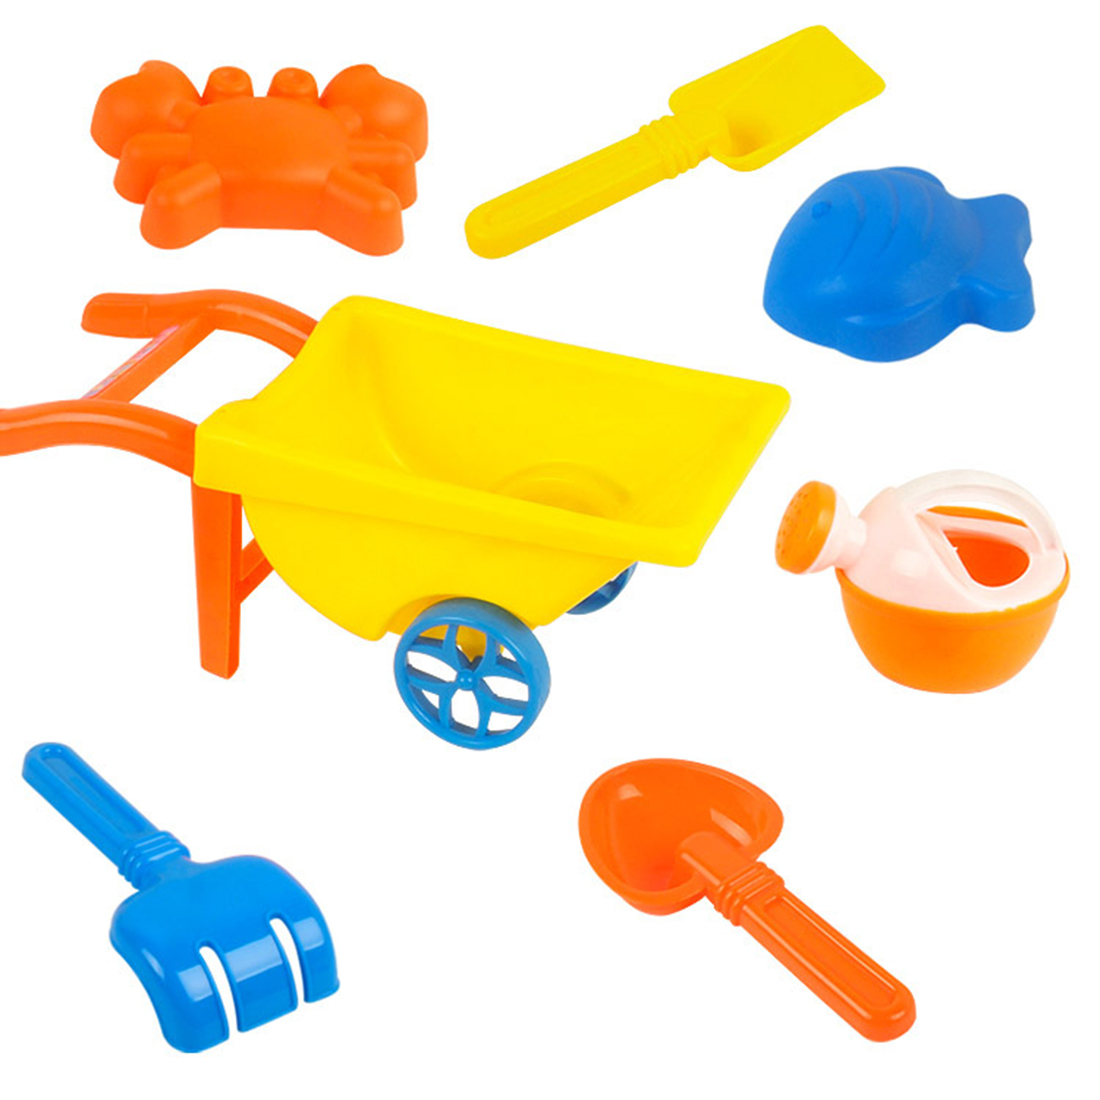 Pools & Water Fun Provided Huang Neeky #402 2019 New Beach Sand Toy Set Models Molds Bucket Shovels Rake Beach Bucket Beach Shovel Funny Hot Free Shipping Cheapest Price From Our Site Beach/sand Toys